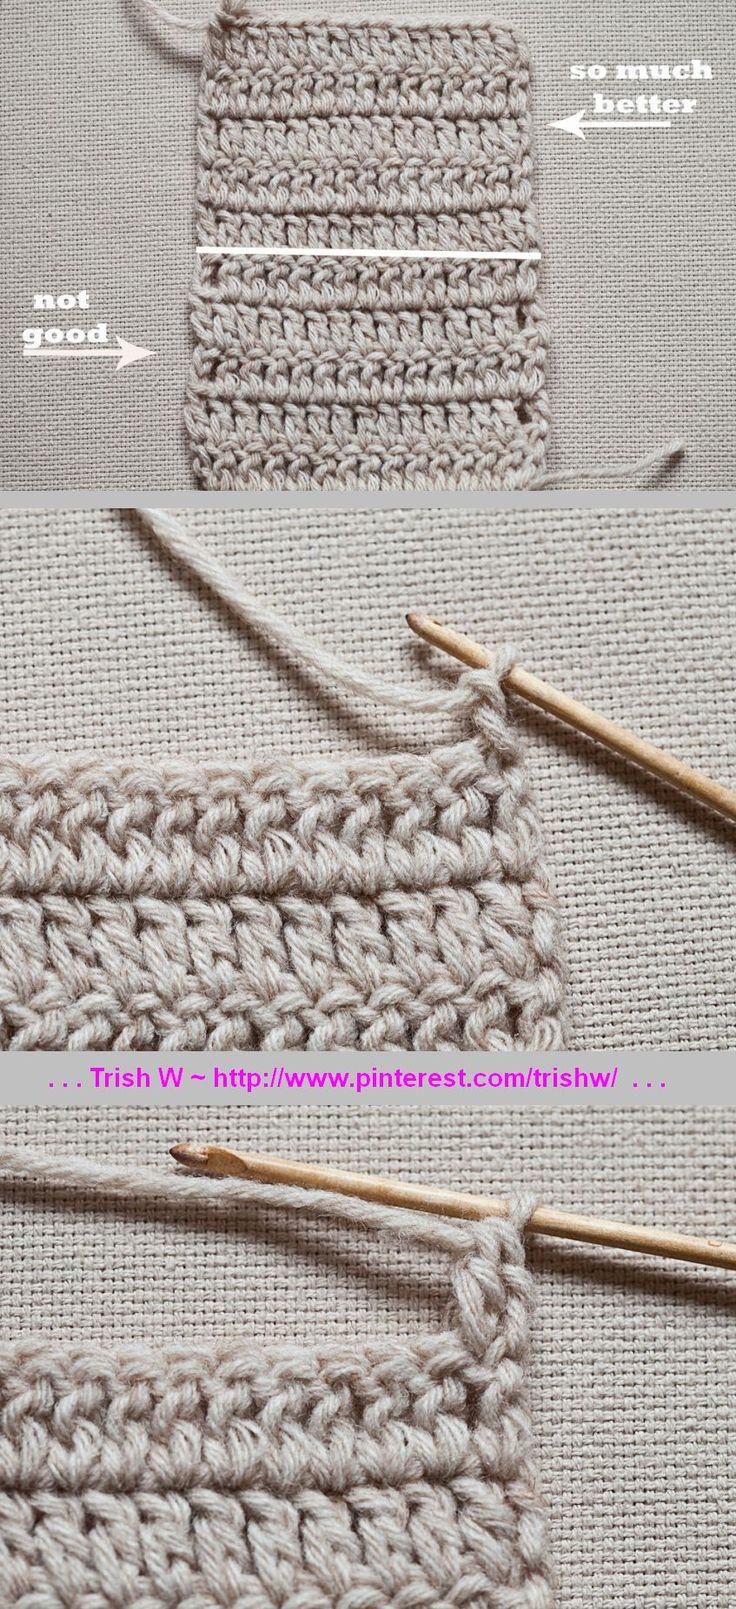 Technique :: Simple Even Double Crochet Edge ~ Pull working loop up a little bit longer than you normally do for ch (it doesn't need to be at the height  of dc, just slightly longer than normal ch).  Ch1 (do not count it as a stitch), work dc in first st & in each next st to end, turn. *You never count ch1 as a stitch,* you always work first dc in first dc of previous row, & last dc always work in last dc (not in ch1) of previous row.  . . .  ღTrish W ~ http://www.pinterest.com/trishw…